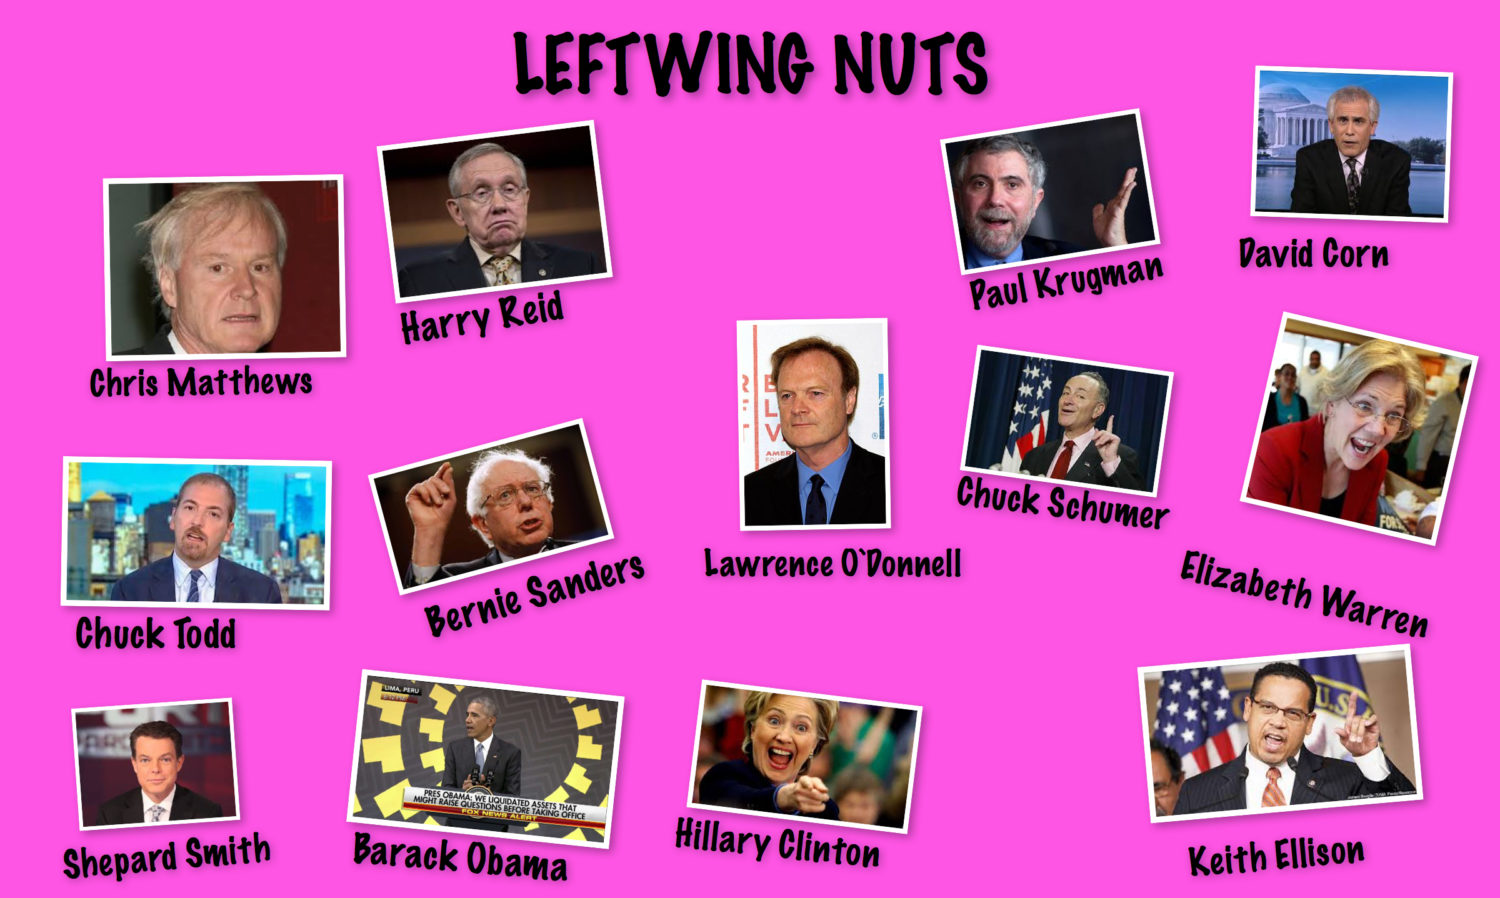 leftwingnuts